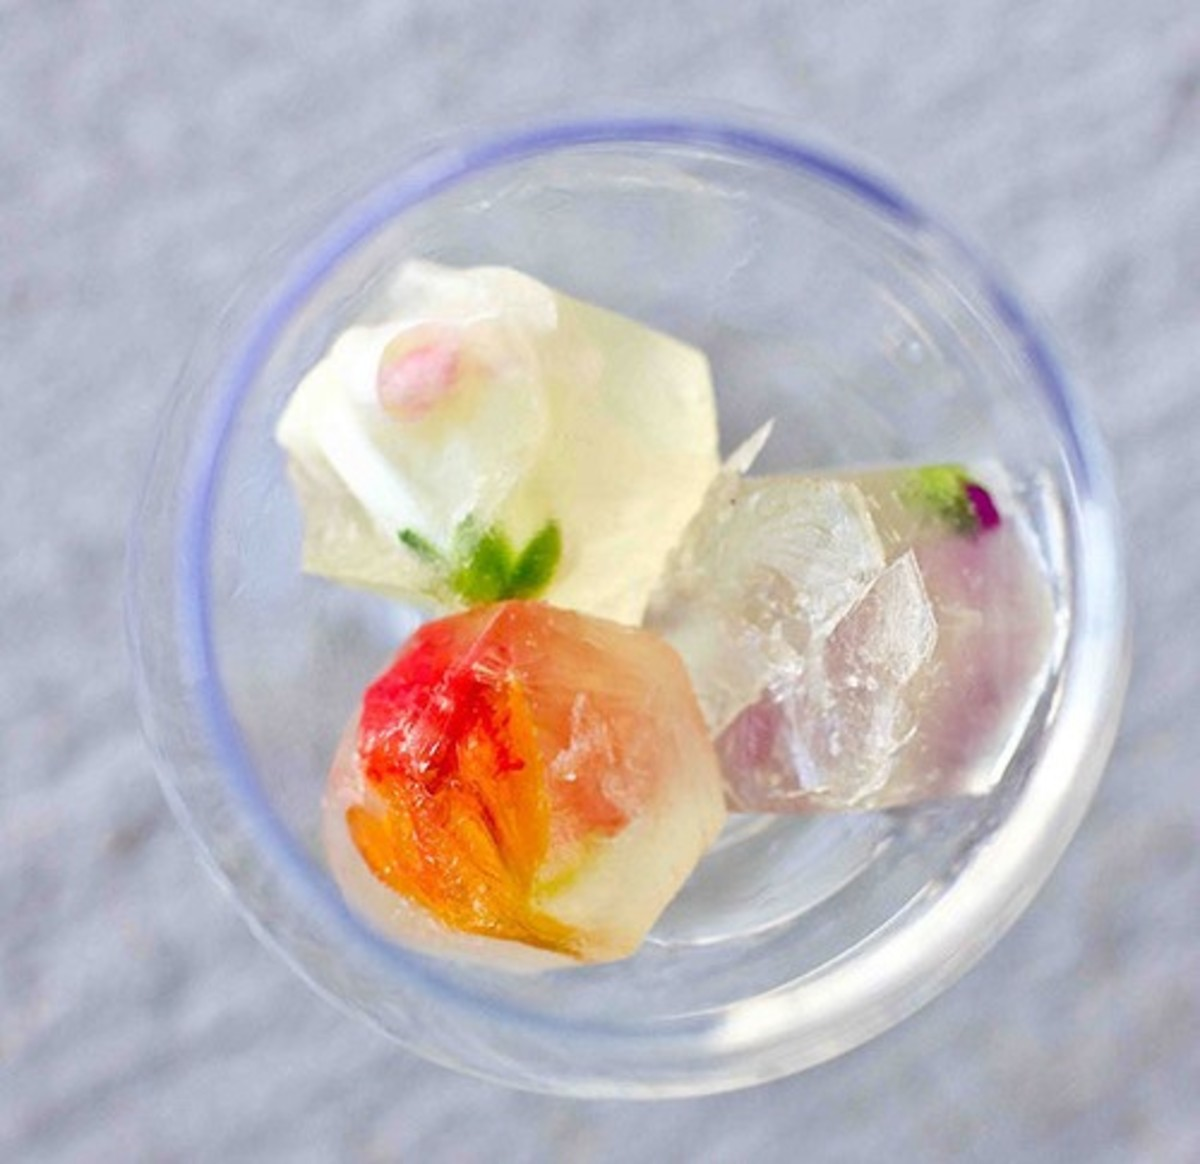 Frozen wine cubes with edible flowers